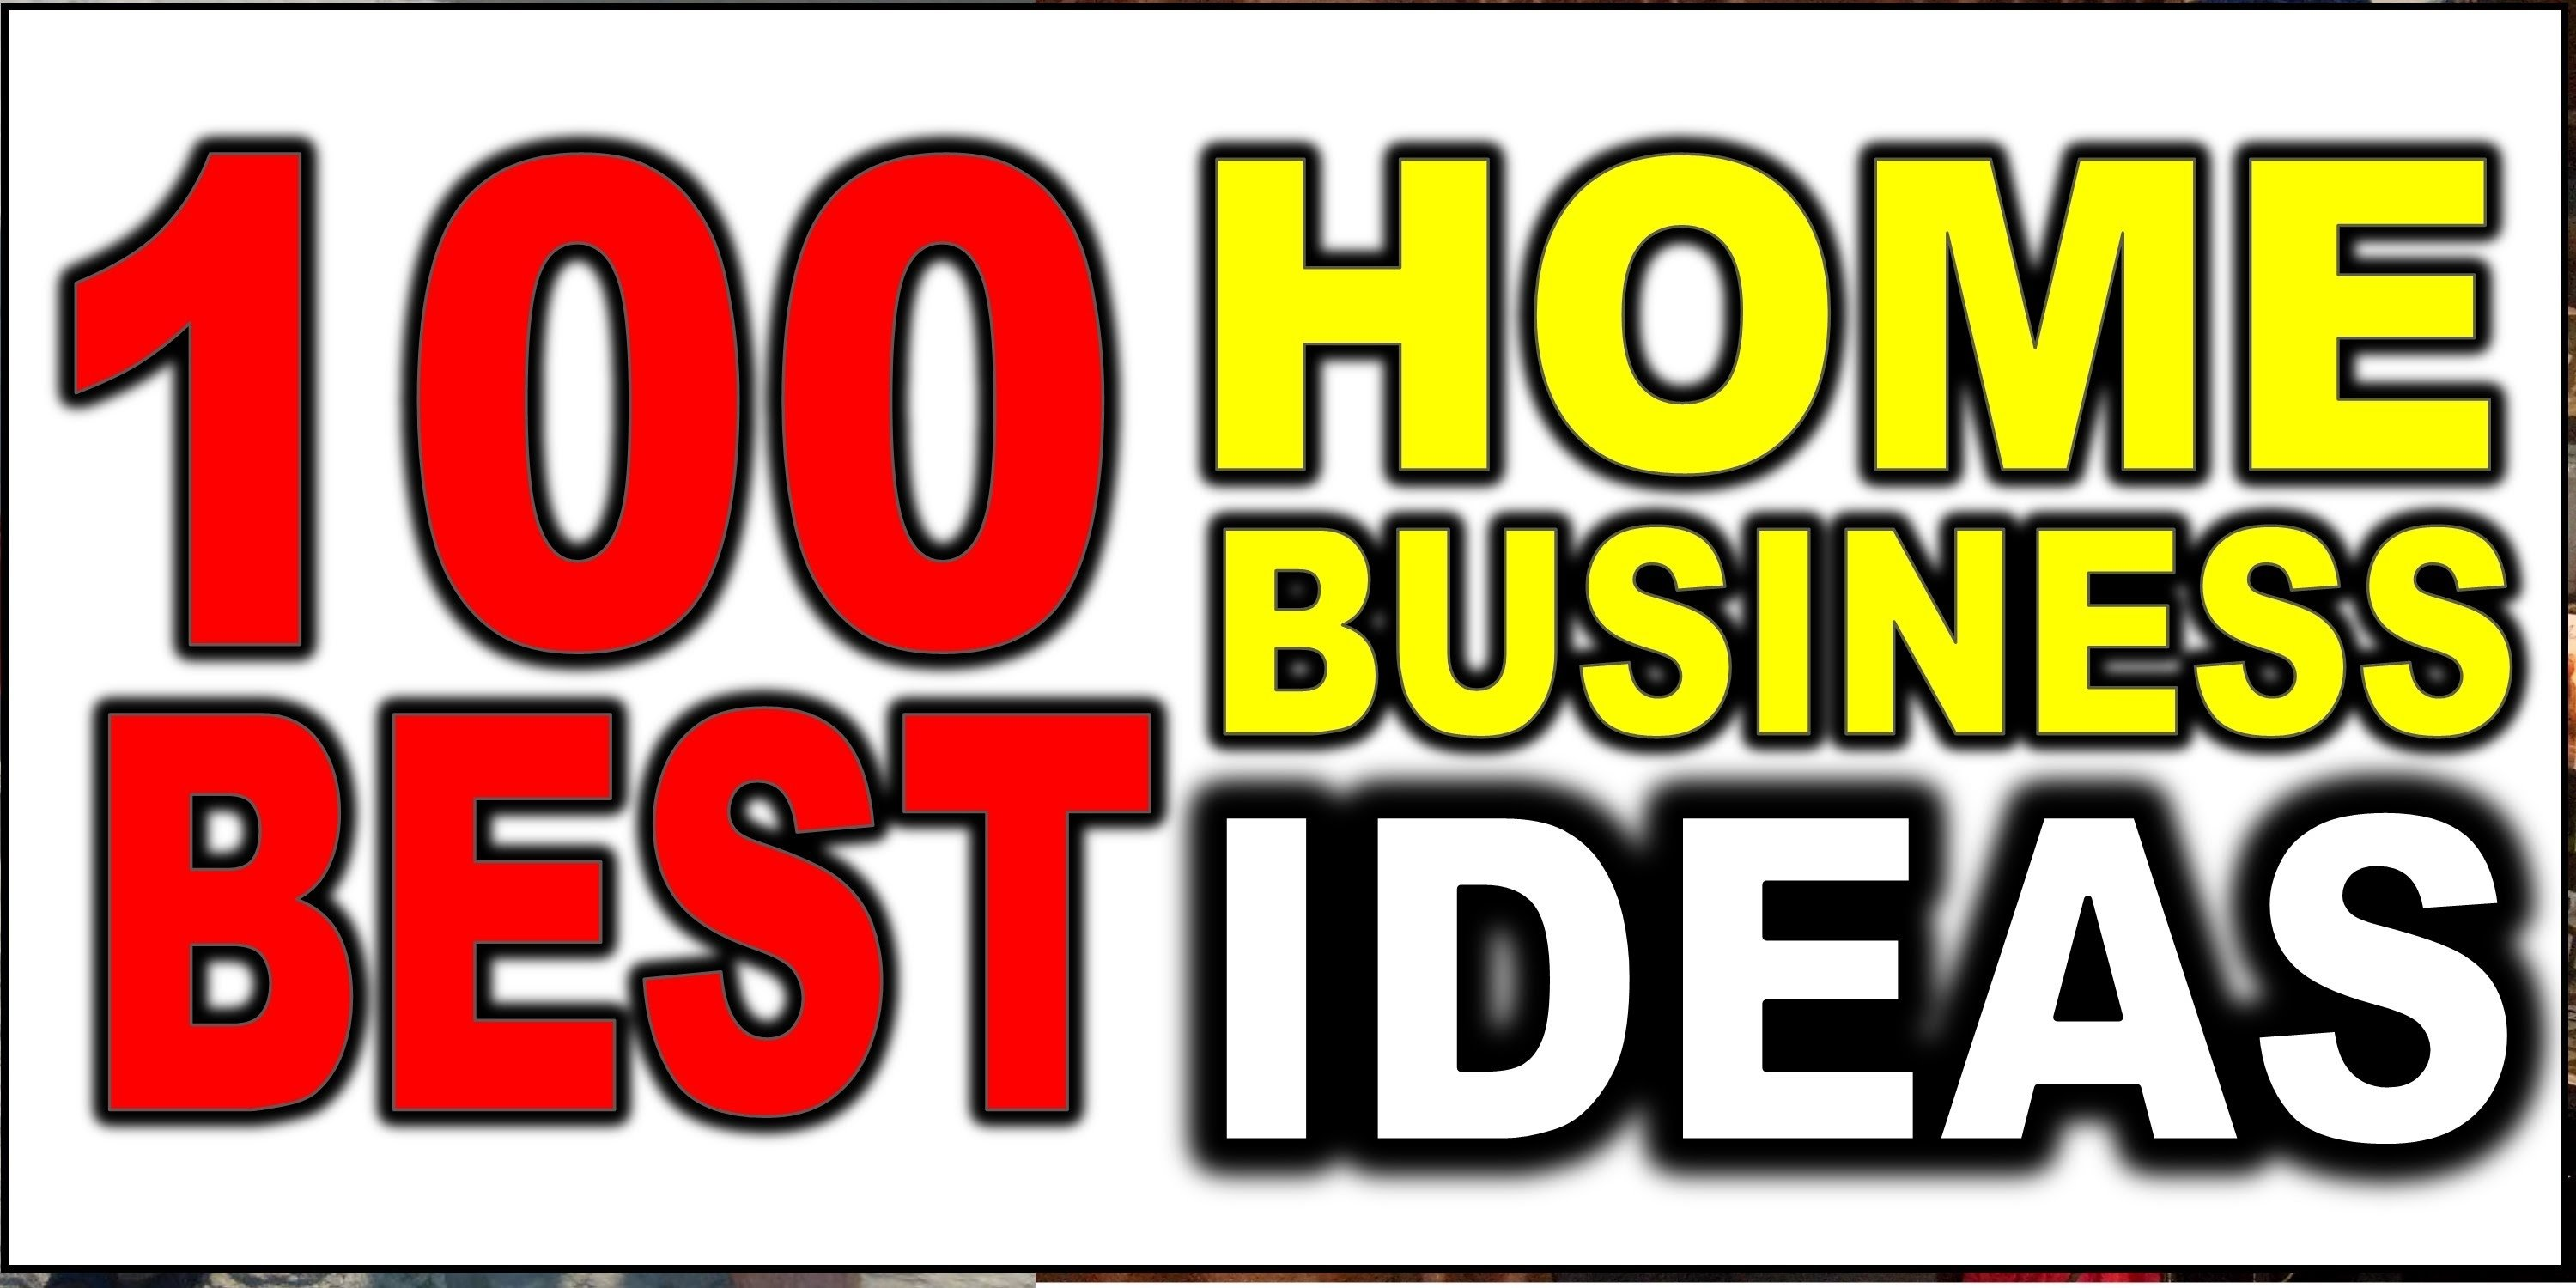 10 Stylish Great Home Based Business Ideas 100 business ideas home based for 2016 youtube 2021